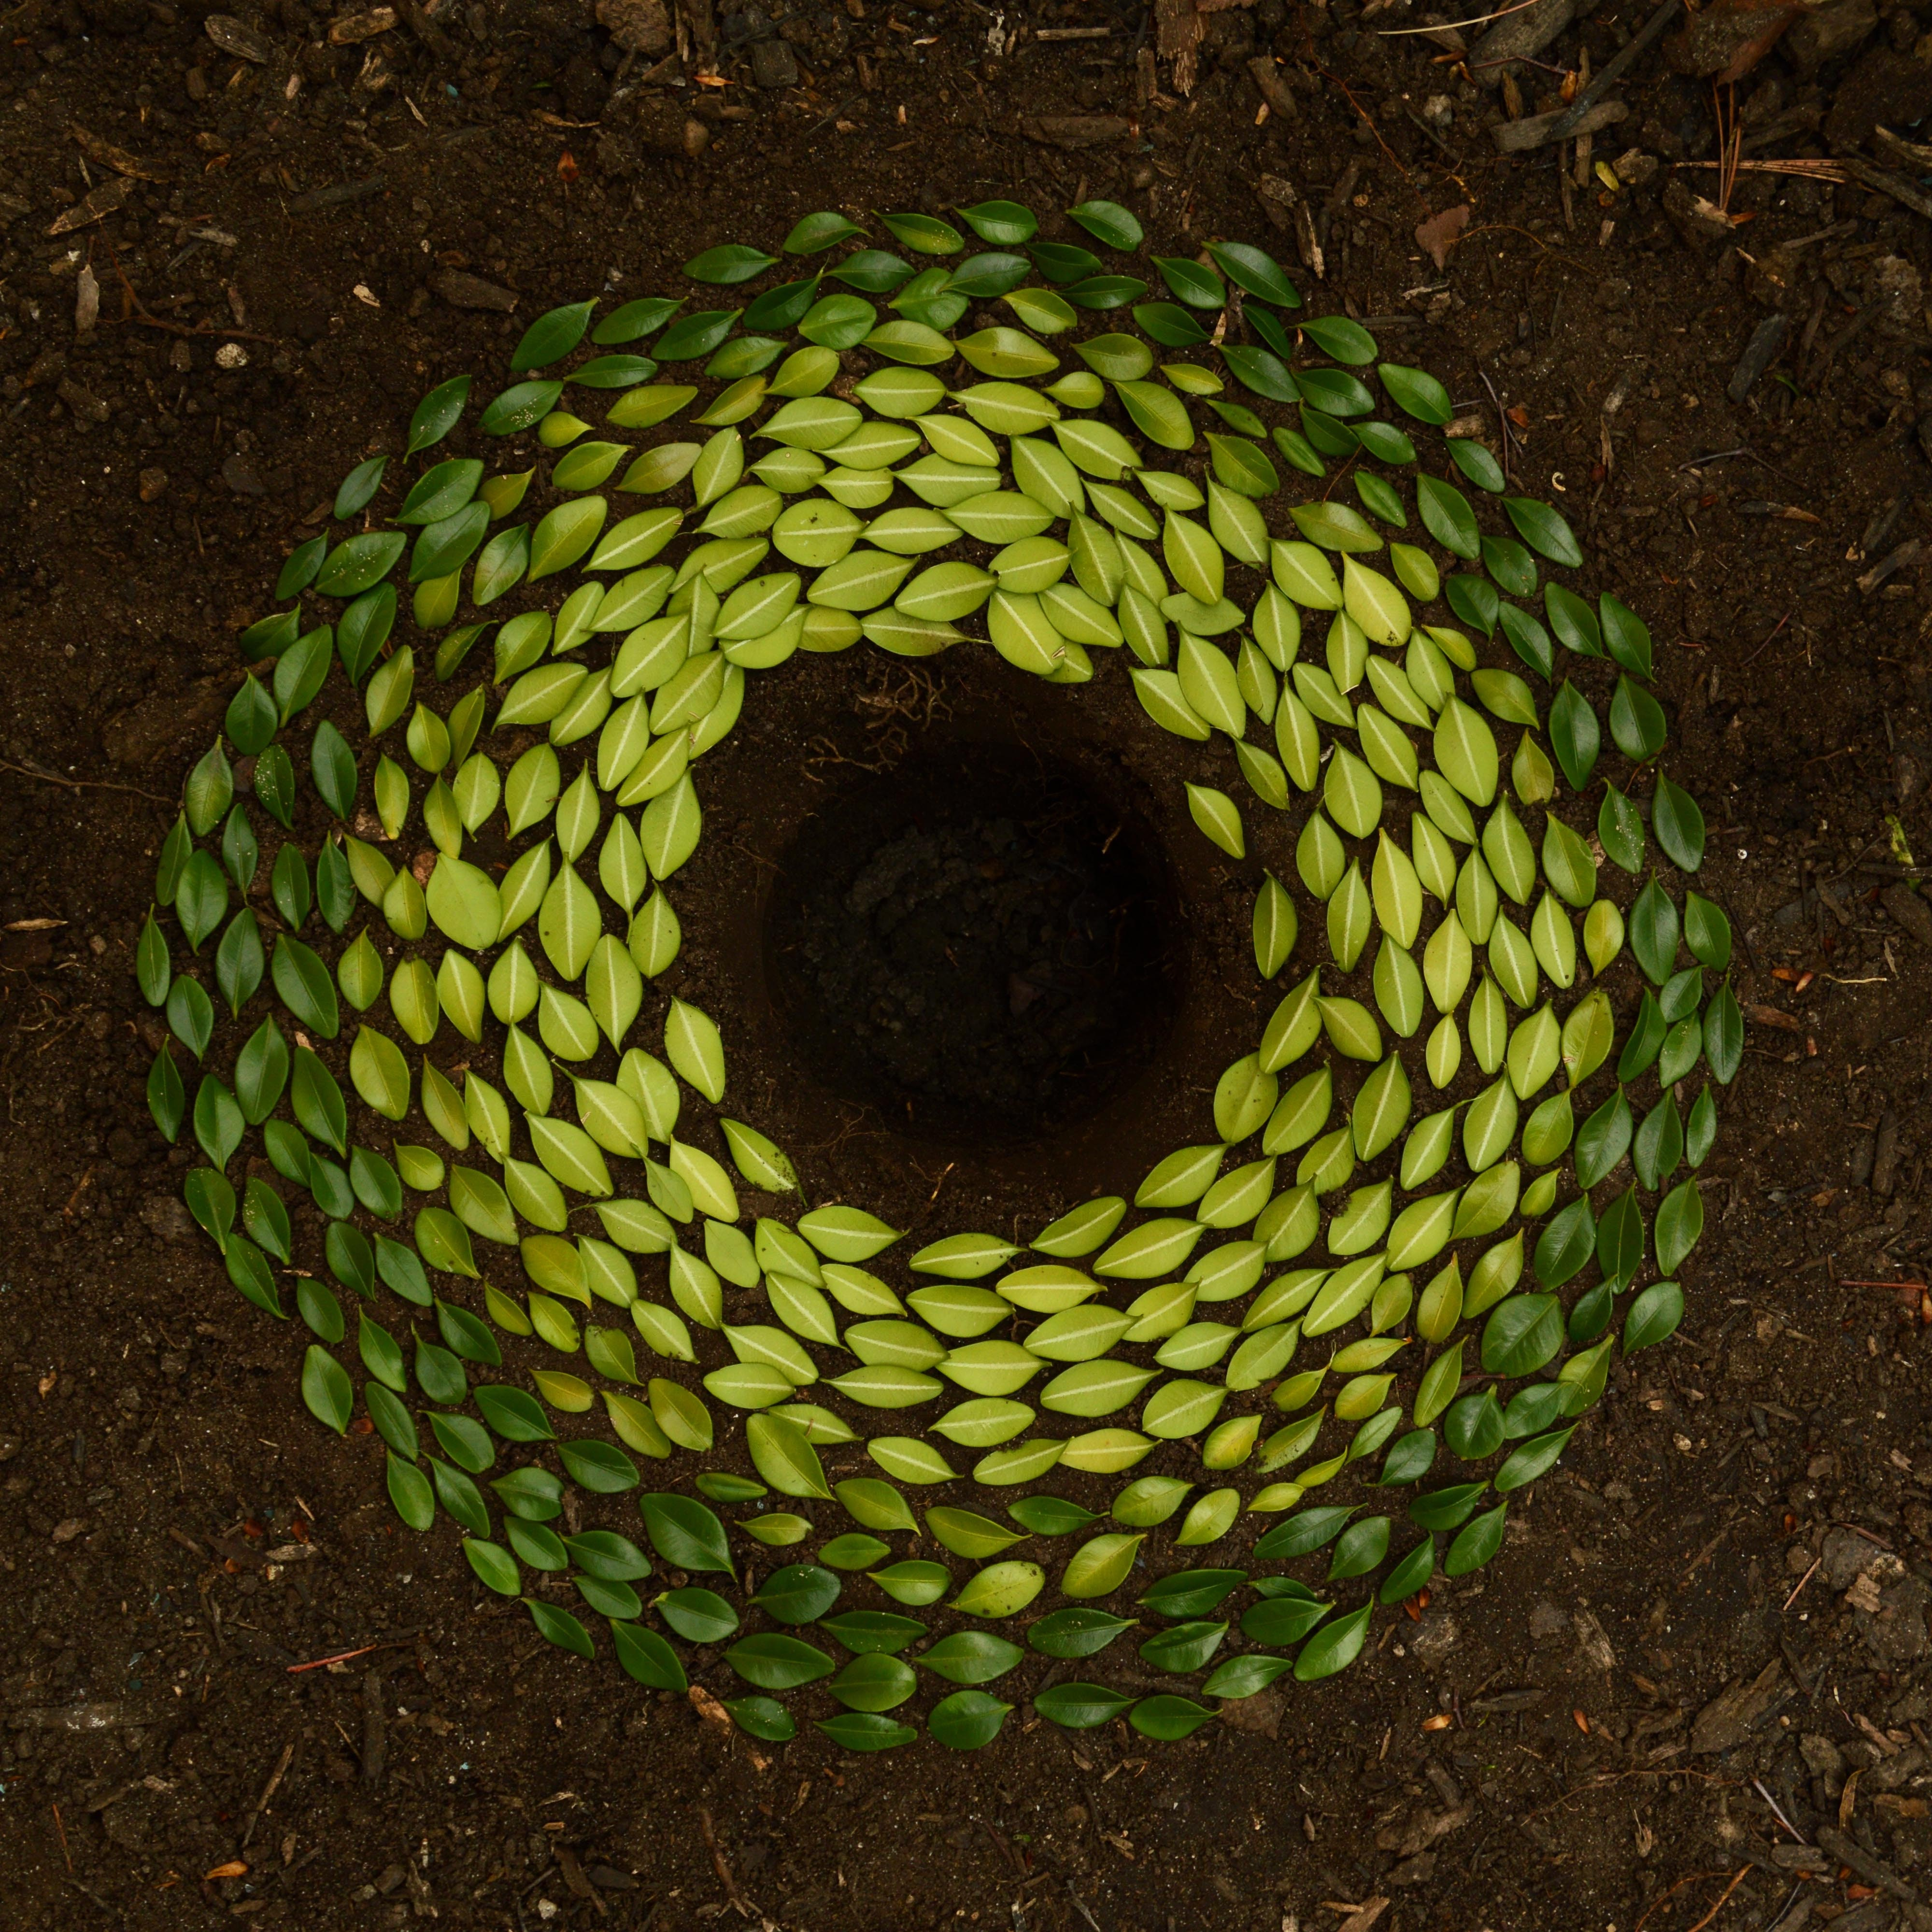 Natural circular art sculpture created using leaves placed around hole in soil ground